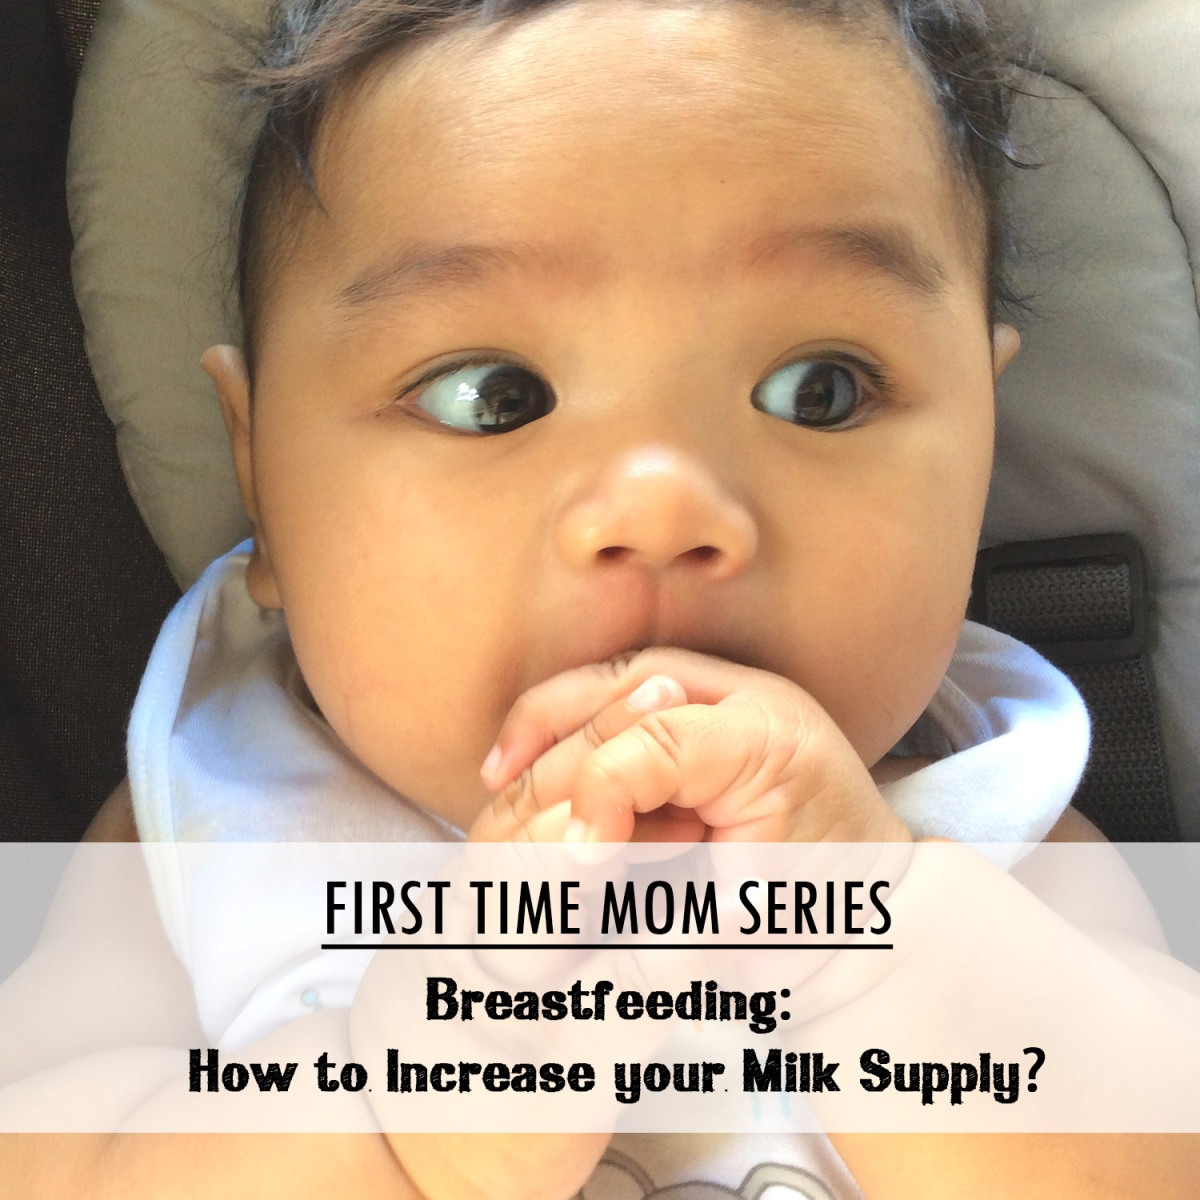 Breastfeeding: How to Increase your Milk Supply?